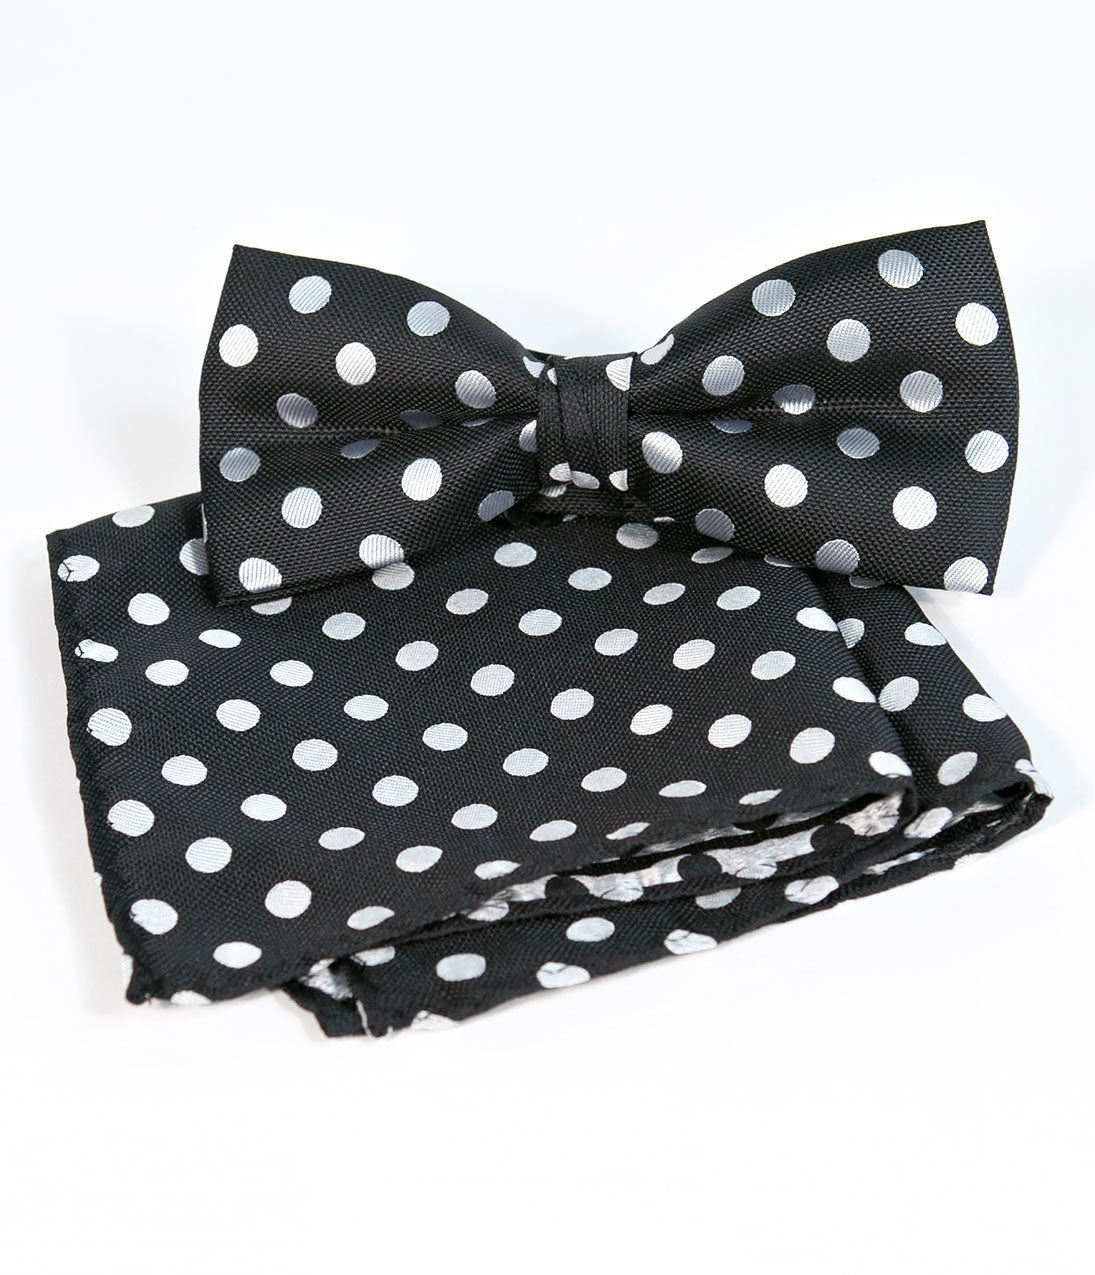 1940s Men's Fashion, Clothing Styles Retro Style Black  White Polka Dot Bow Tie  Pocket Square $12.00 AT vintagedancer.com